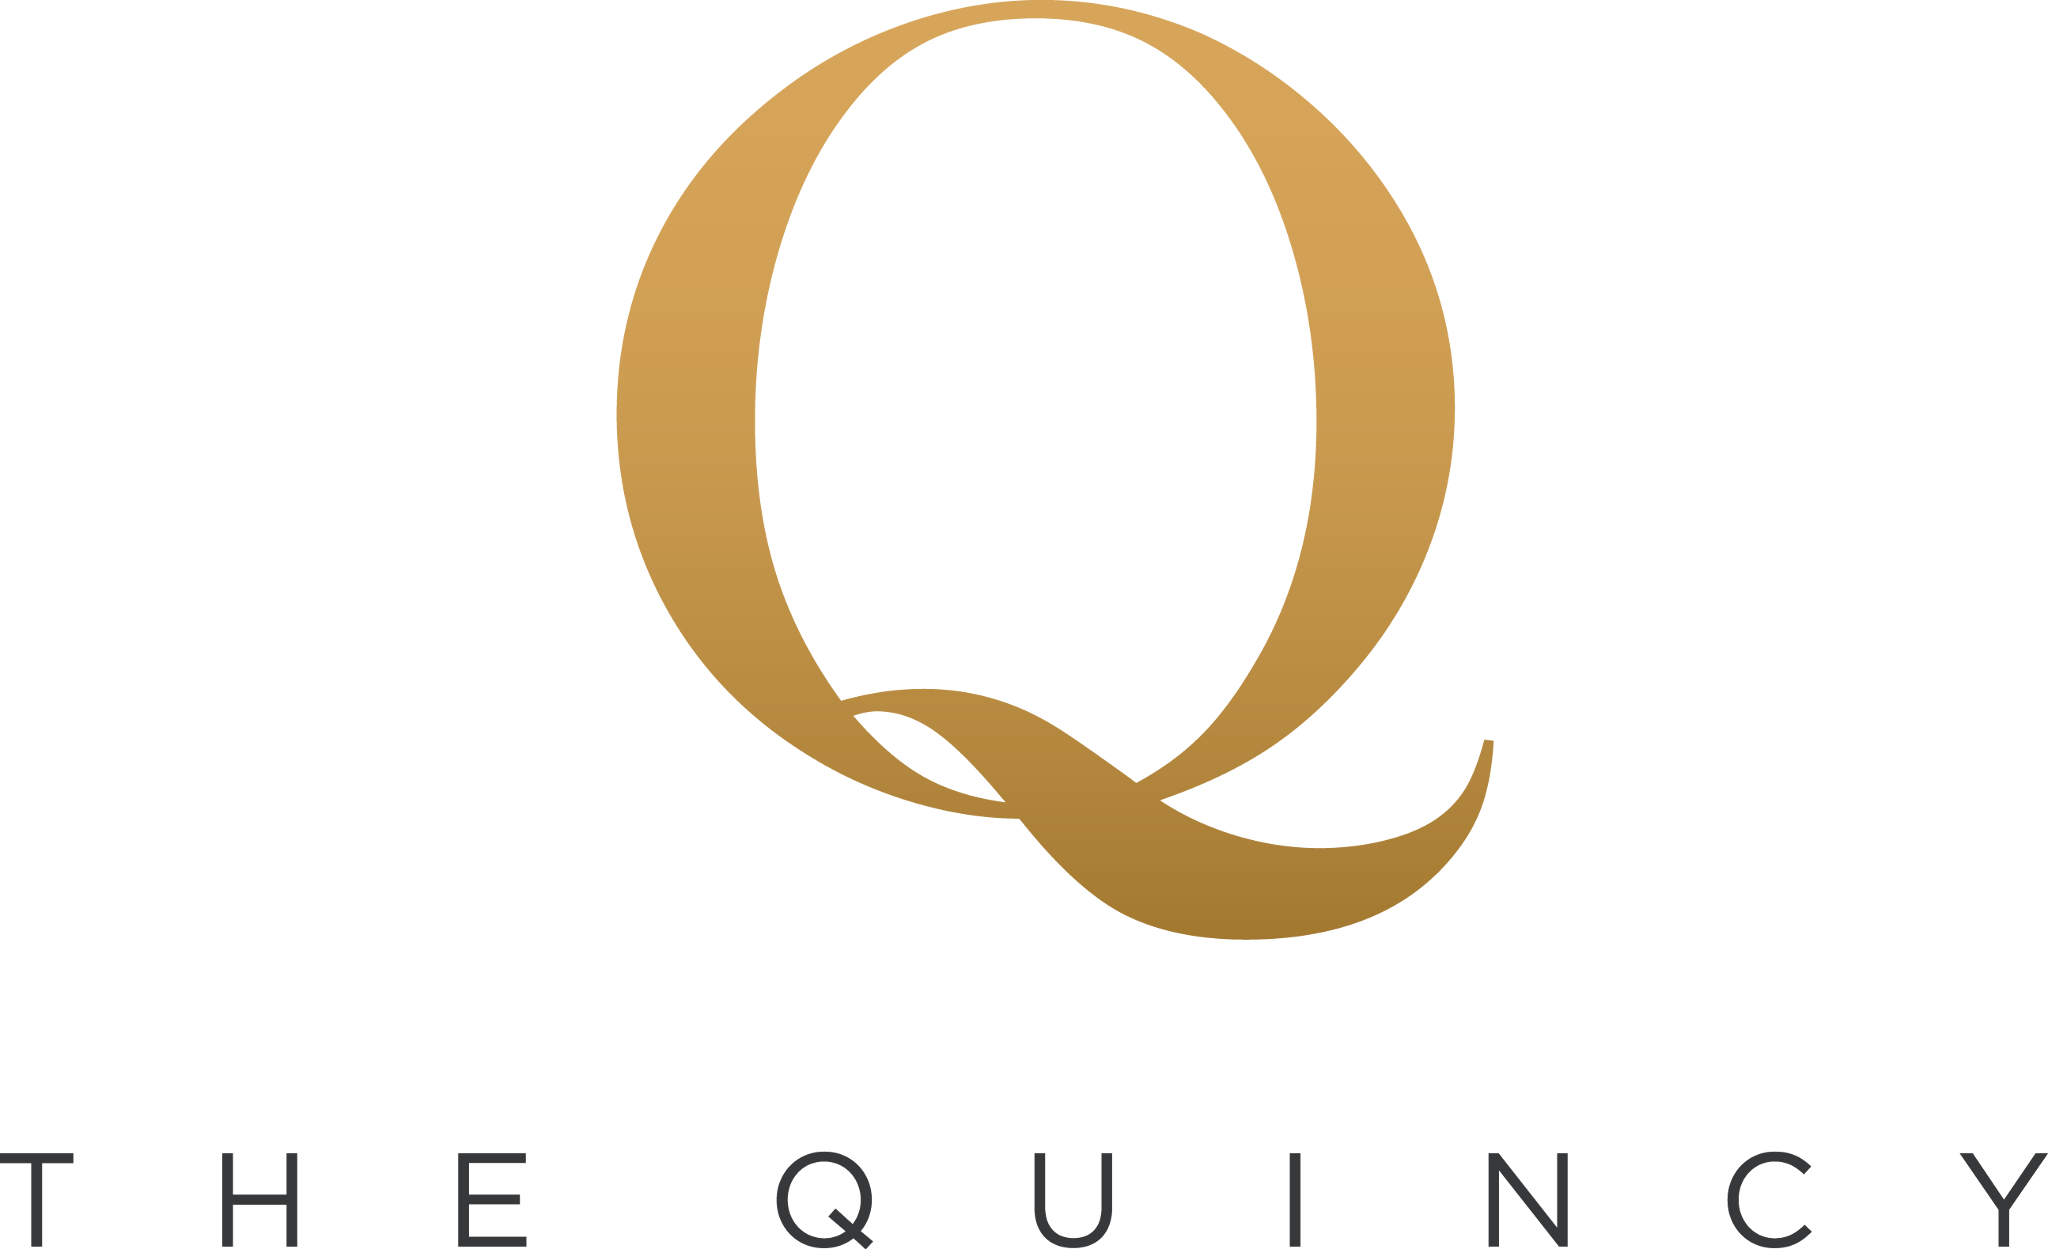 the quincy logo